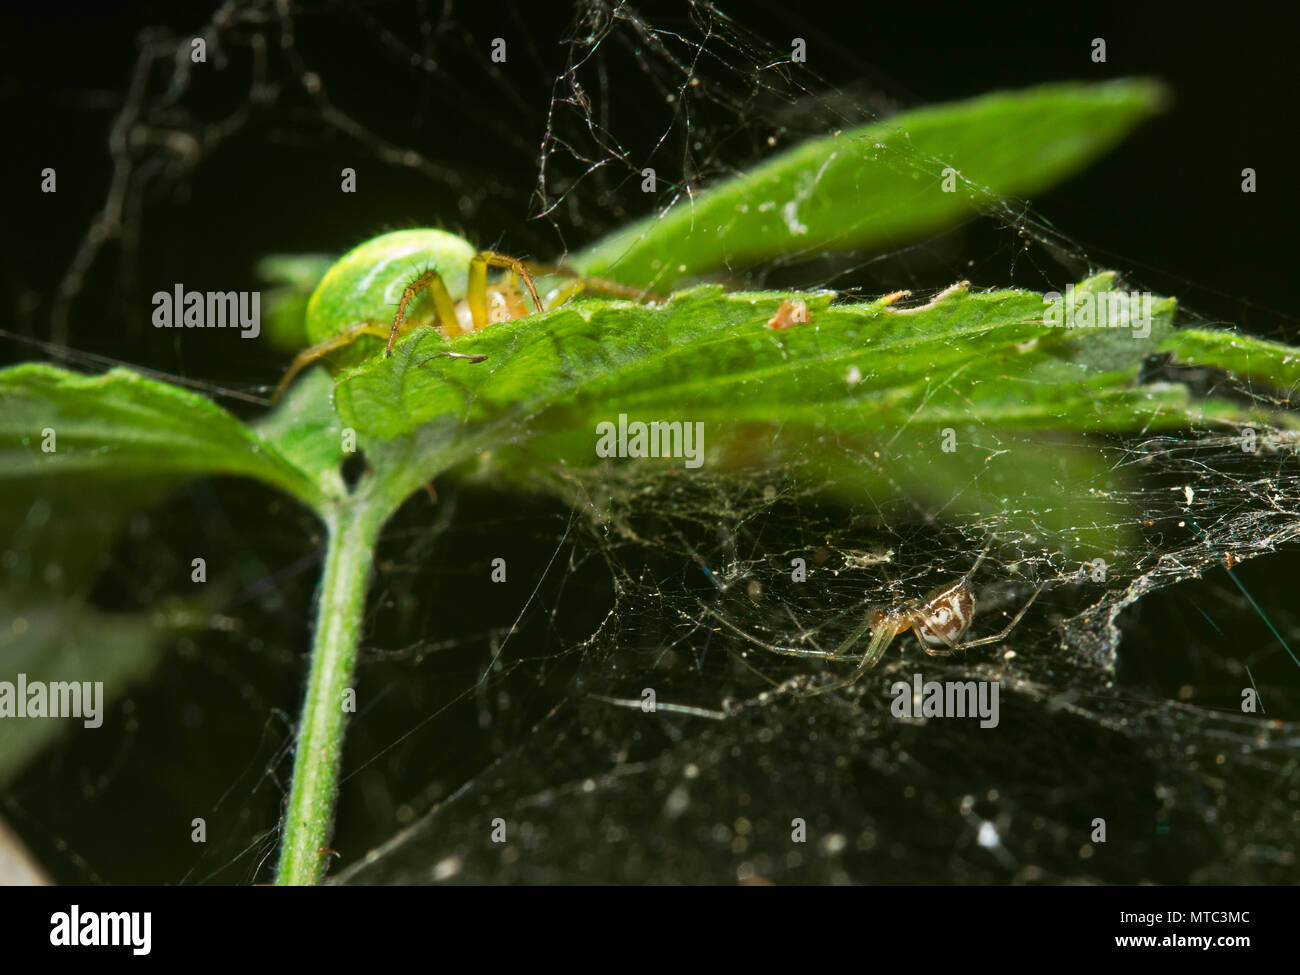 Two spiders on the leaf of Raspberry, a Cucumber green spider on the upper side and a Sheet weaver on the under side - Stock Image